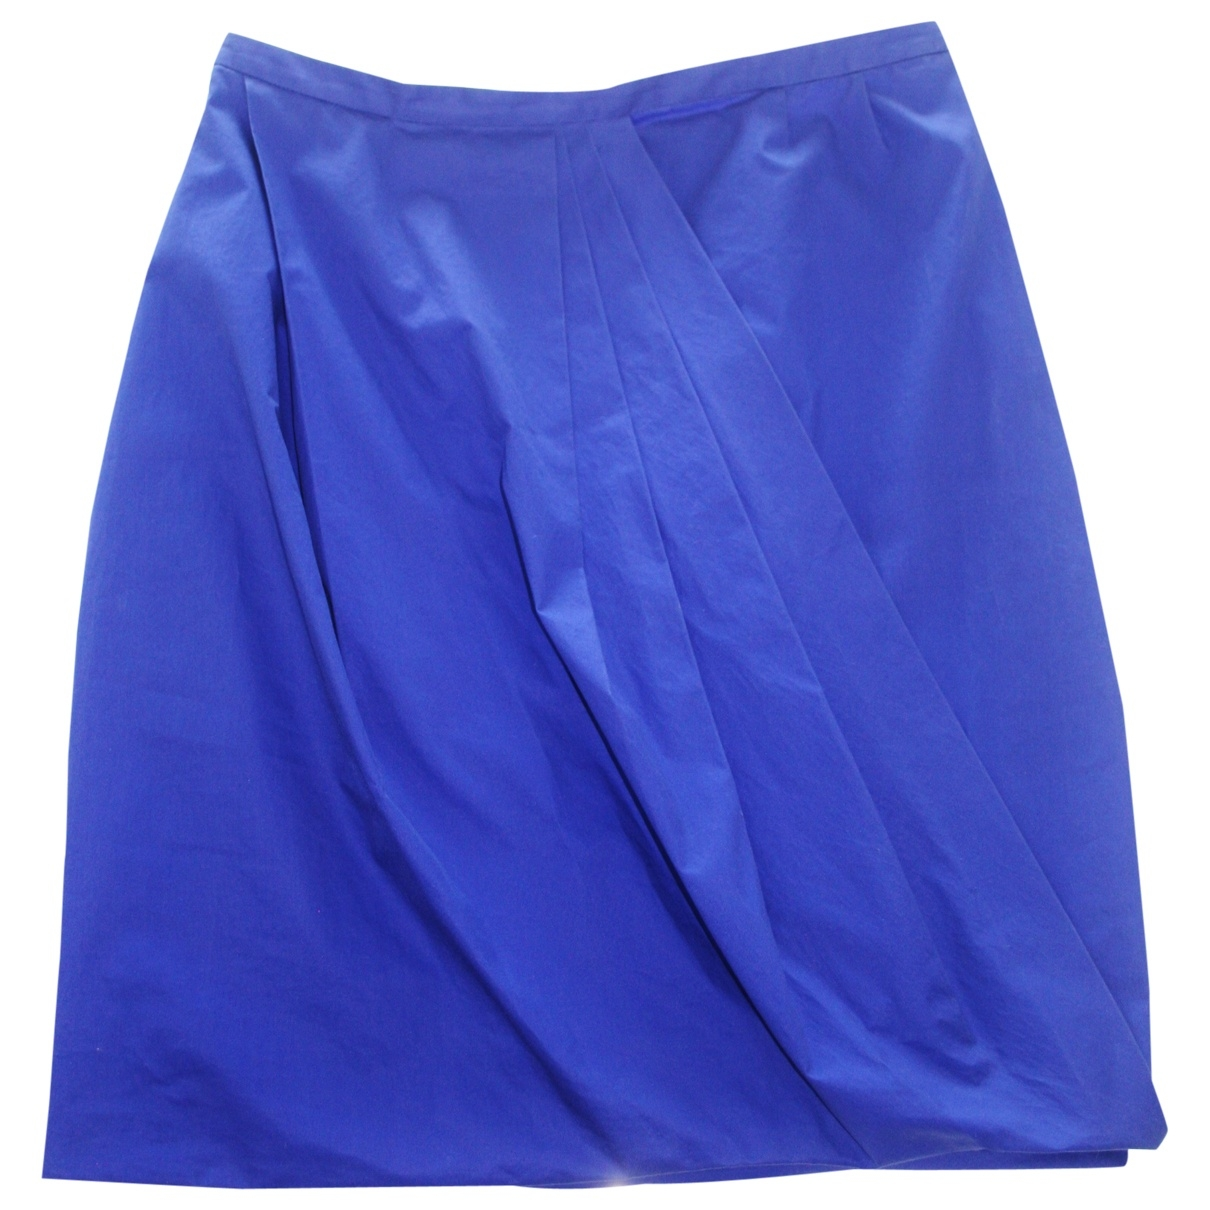 Acne Studios \N Blue Cotton skirt for Women 38 FR